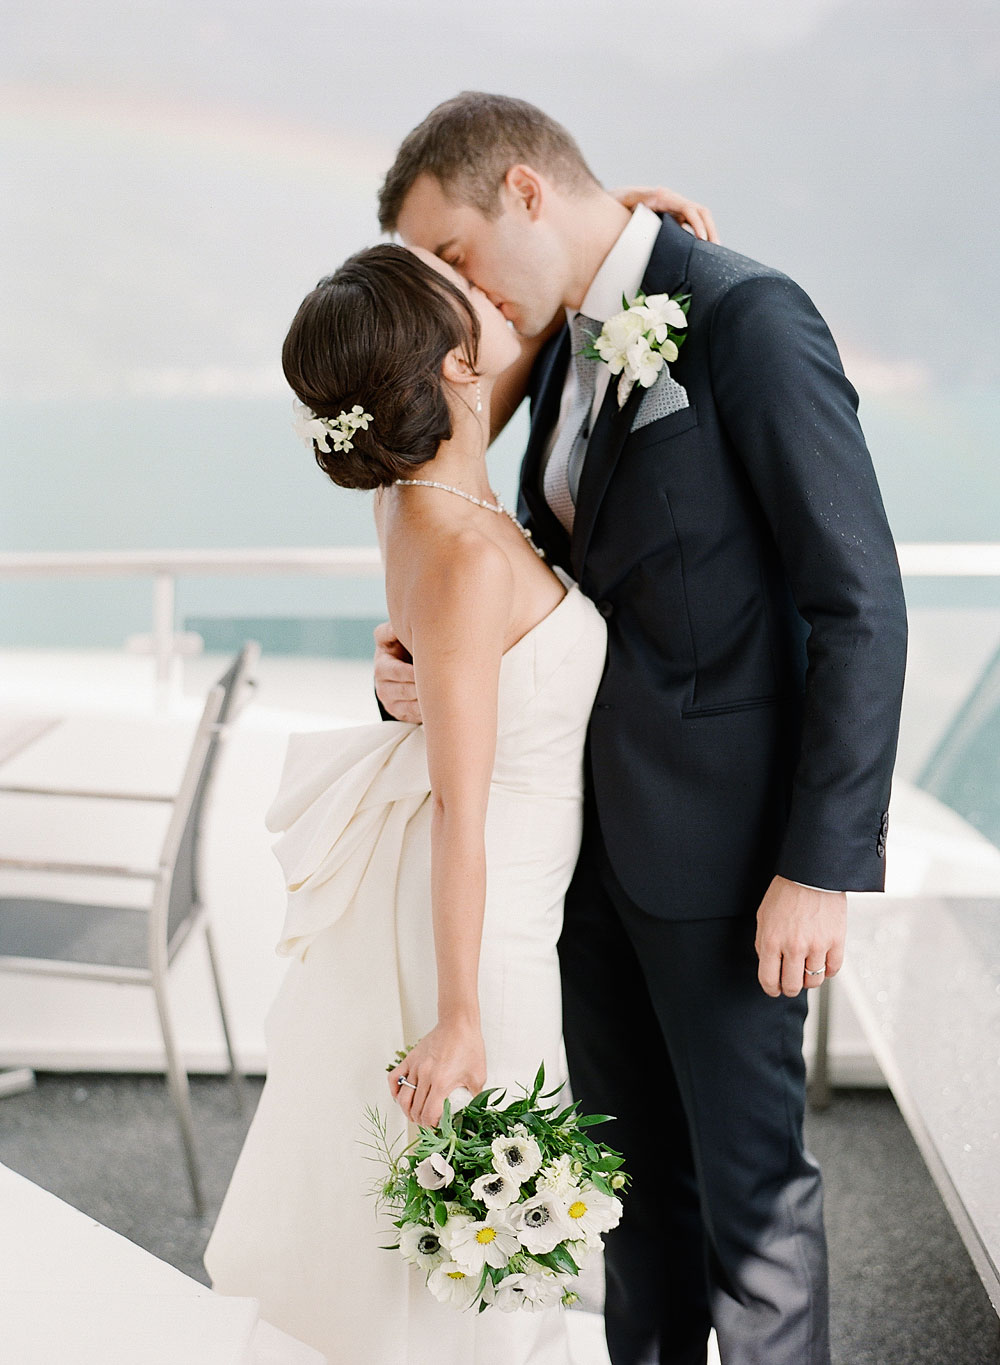 wedding_photographer_luzern_vitznau_13.jpg